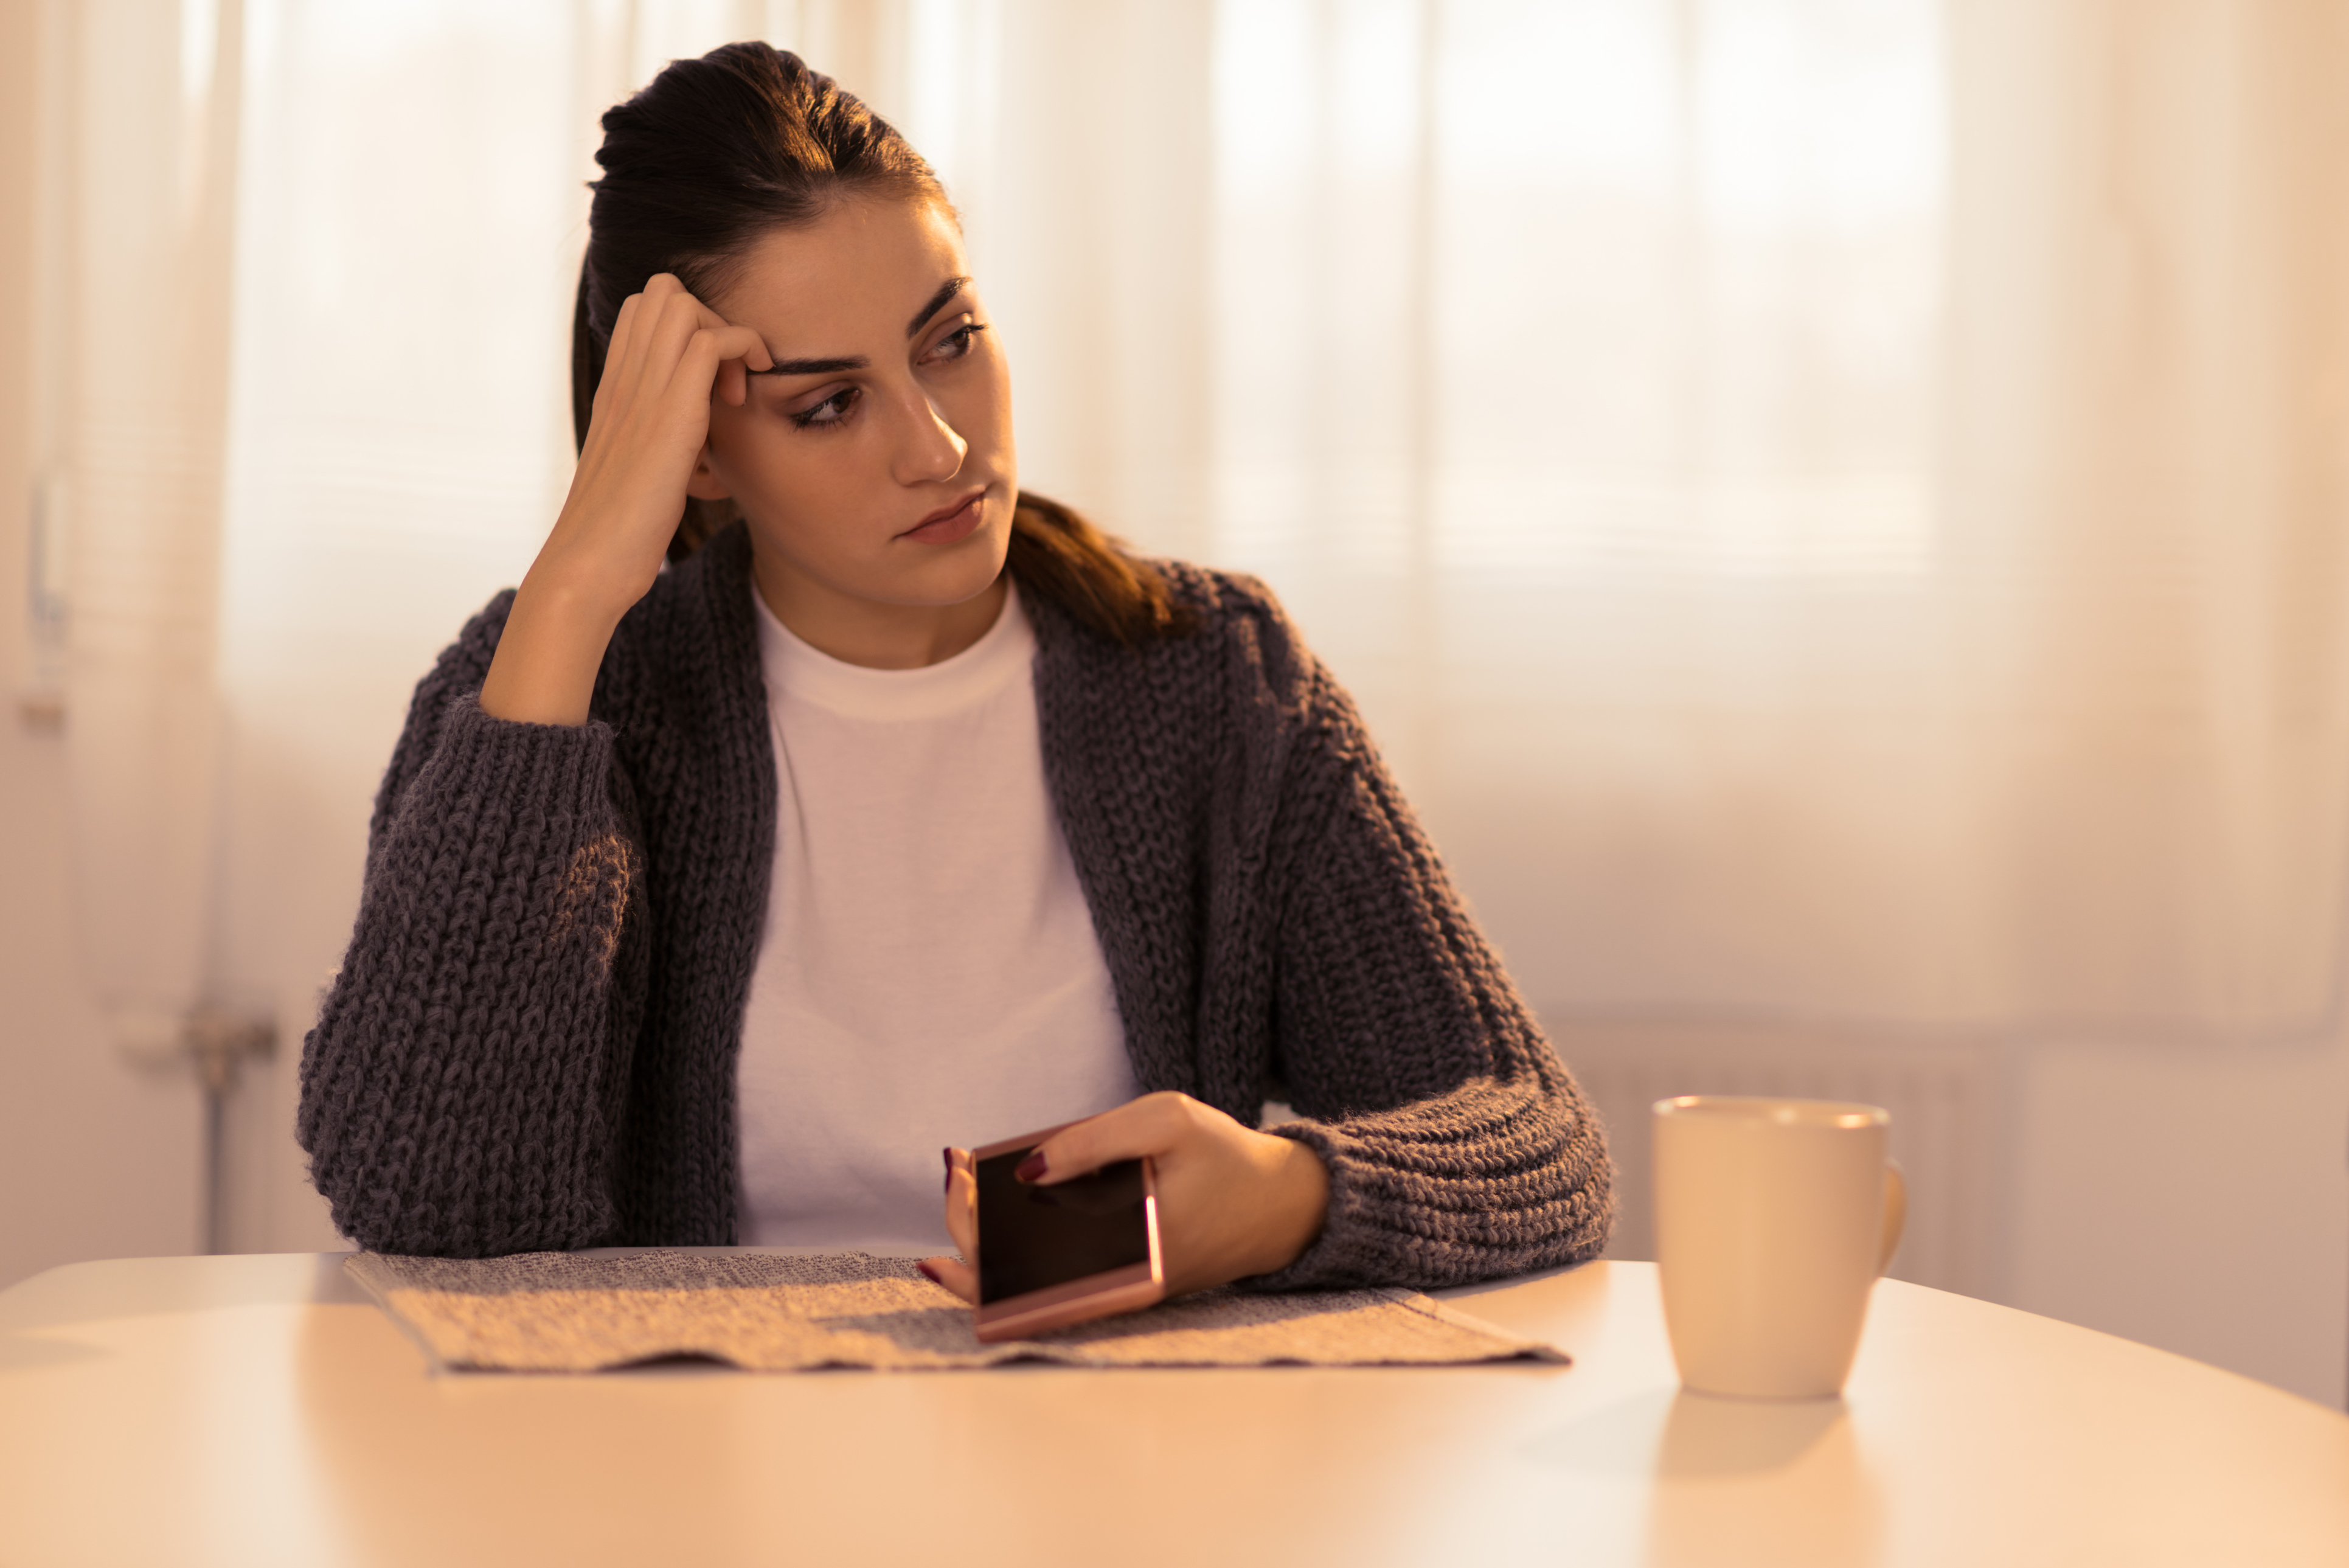 Online Dating: When A Person Agrees To A Date But Then Stops Responding?